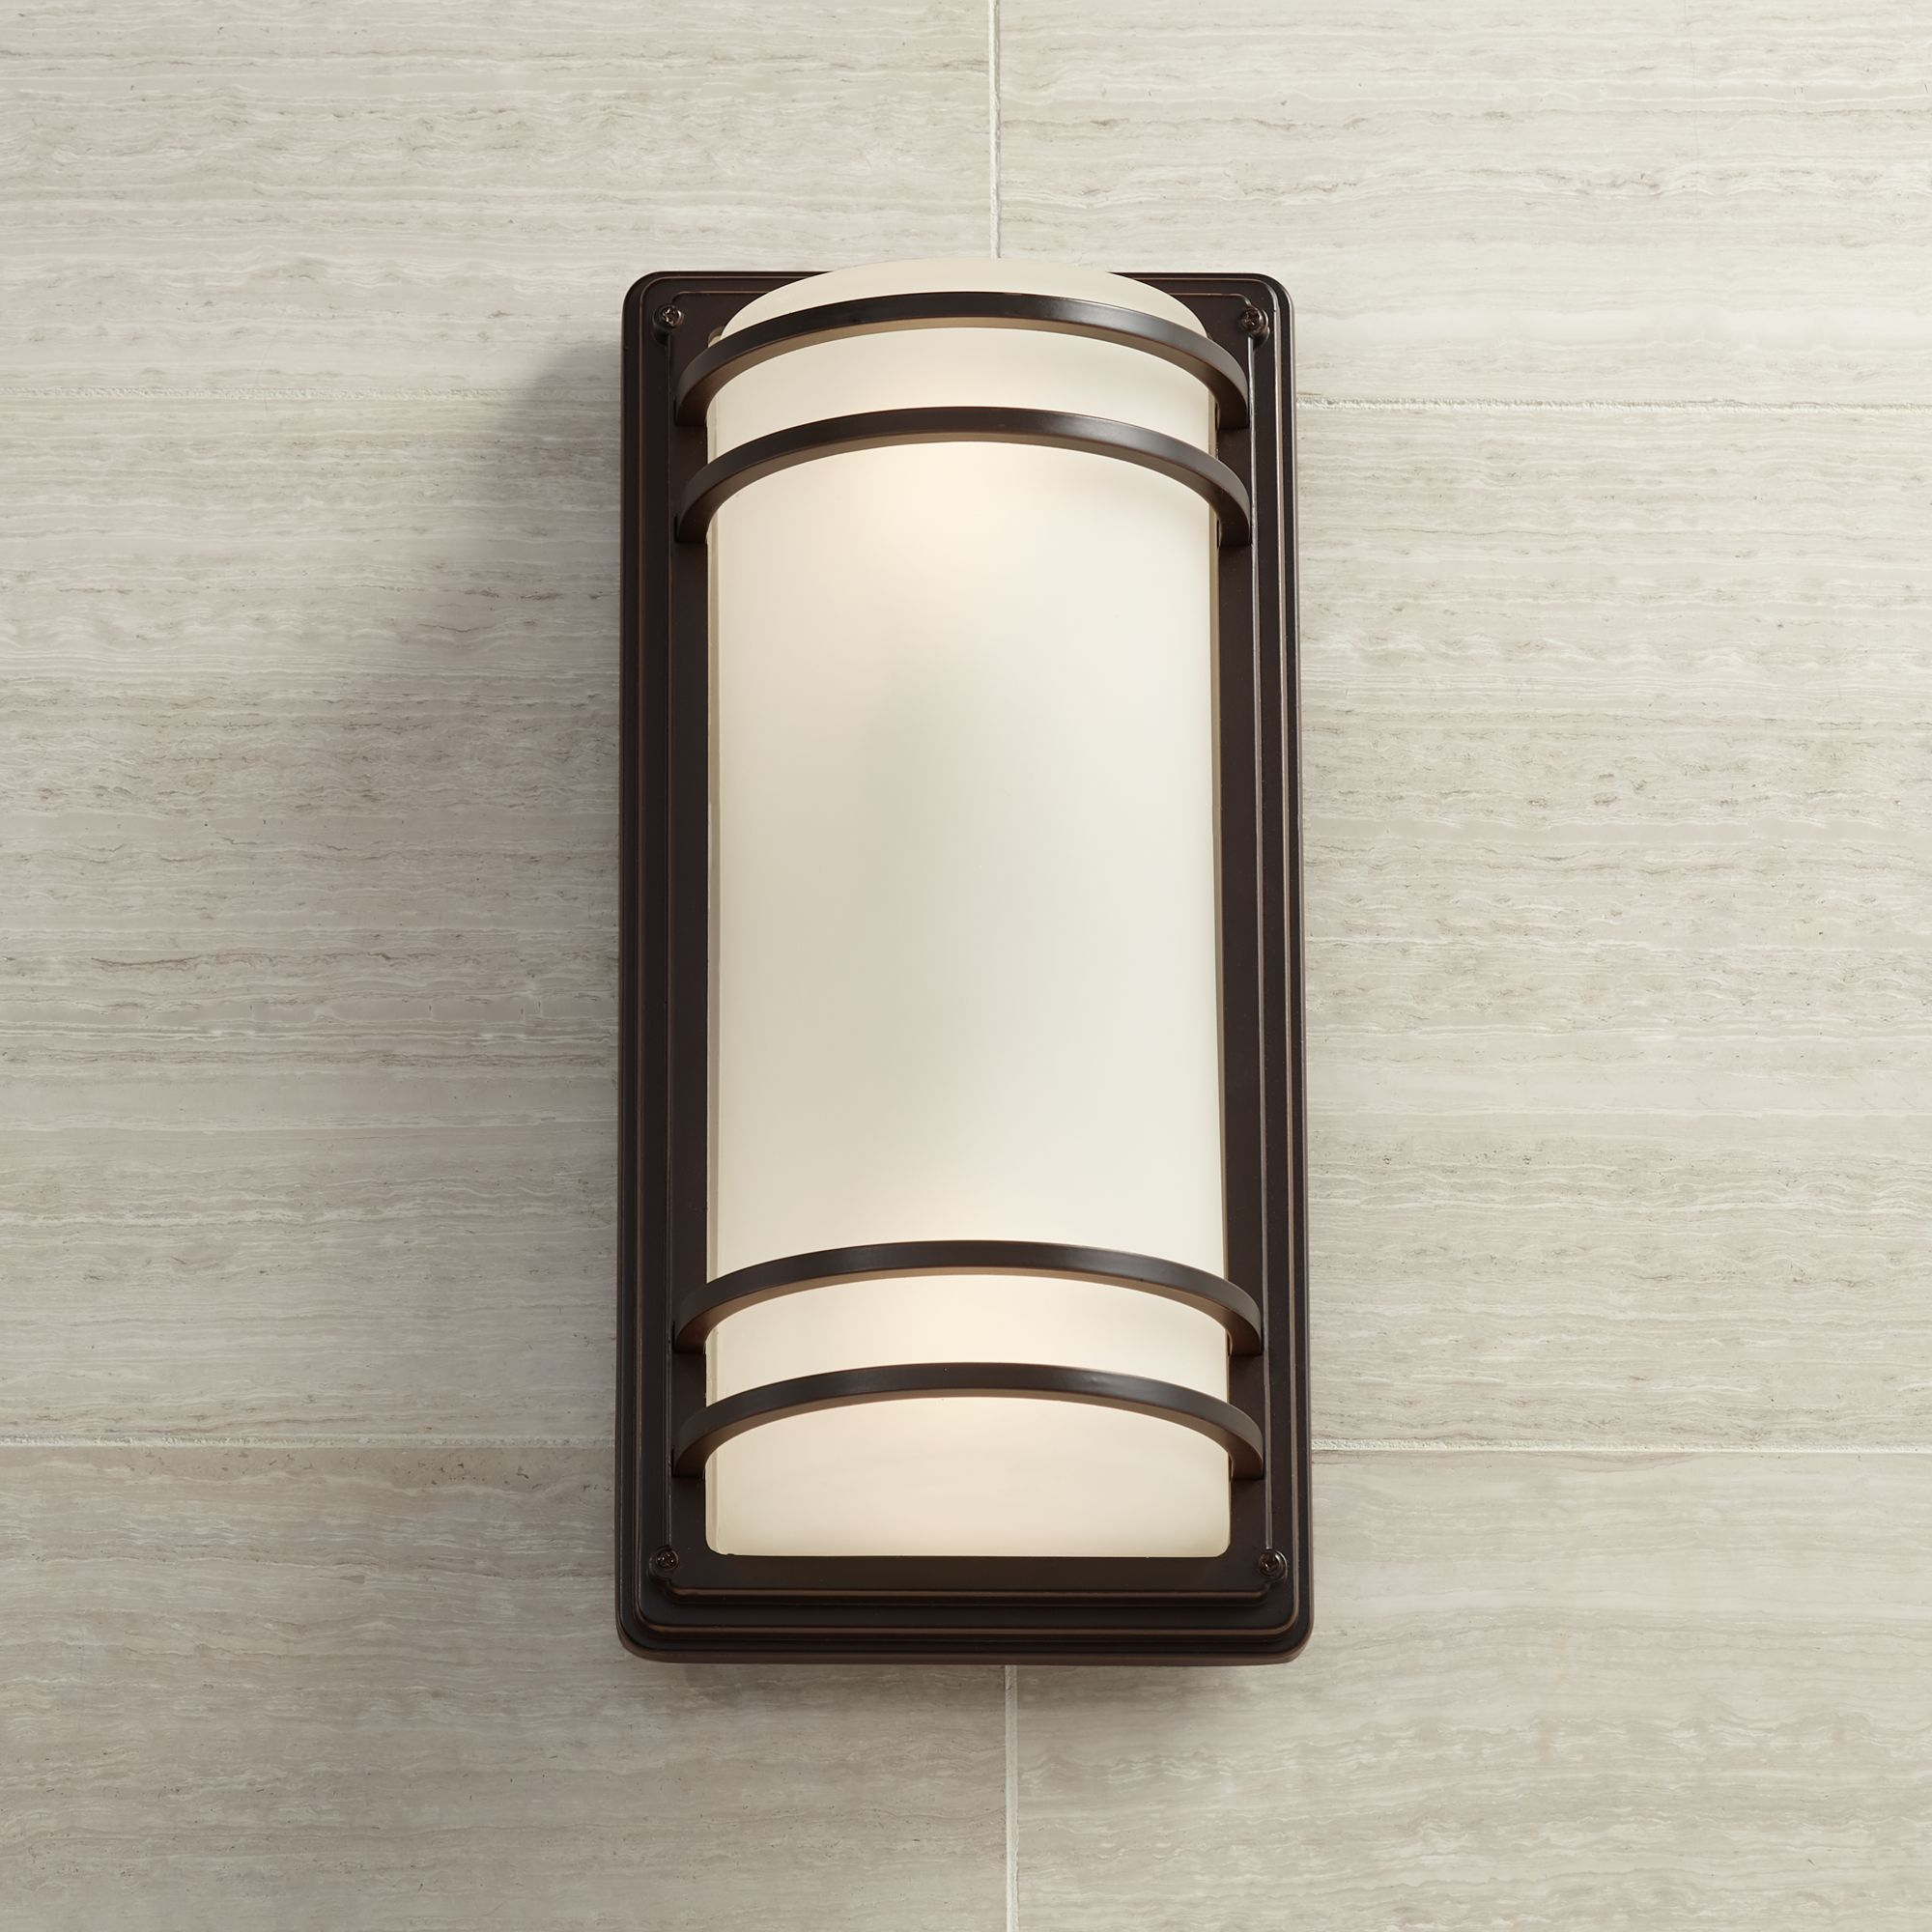 John timberland modern outdoor wall sconce fixture rubbed bronze 16 opal etched glass for exterior house porch patio